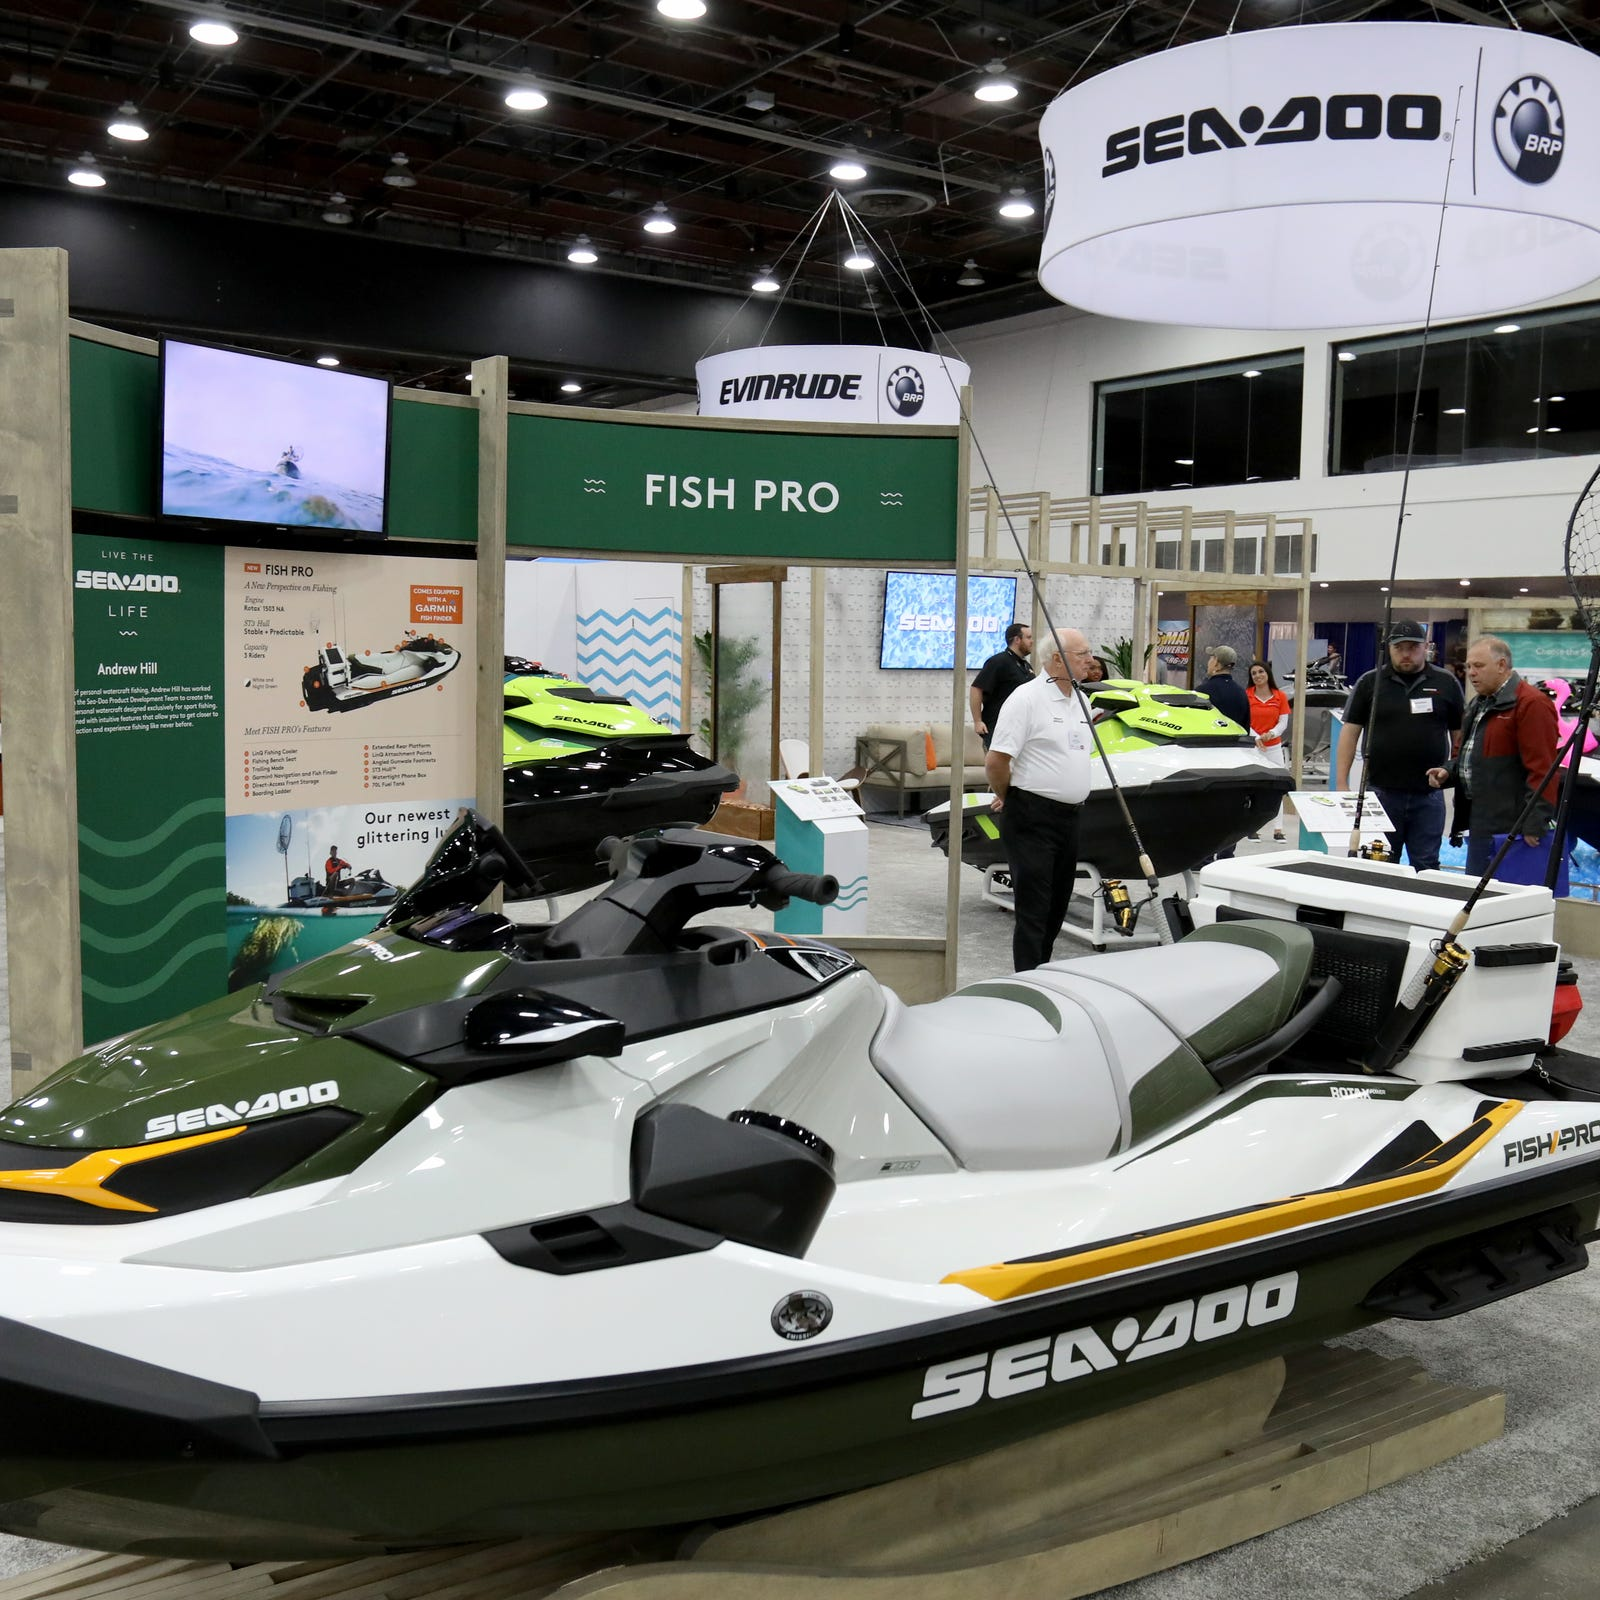 Sea-Doo unveils watercraft built for fishing at 2019 Detroit Boat Show